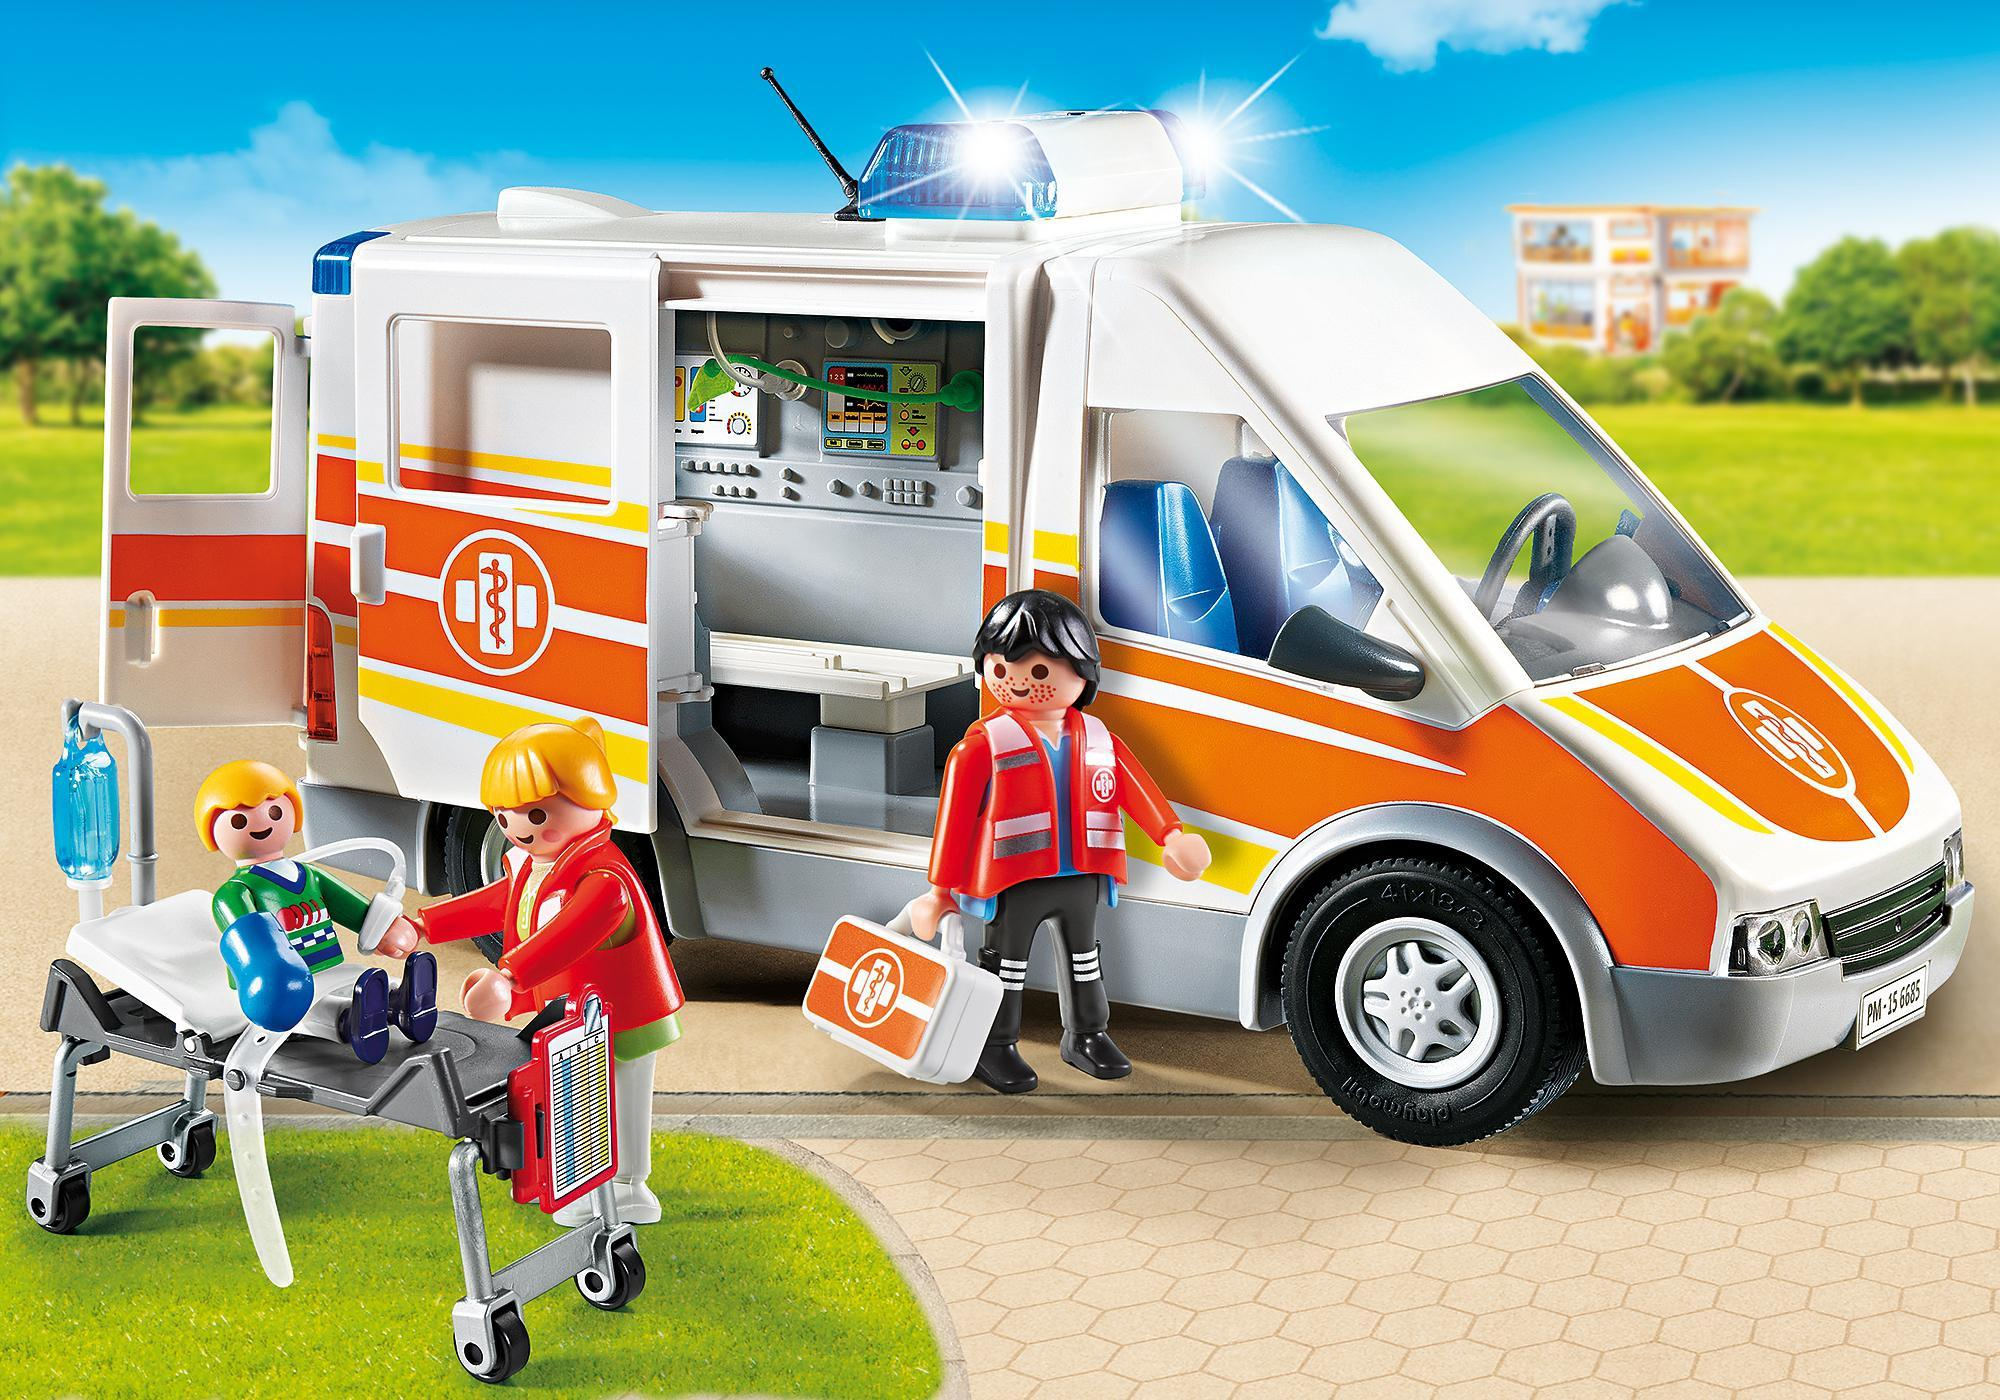 http://media.playmobil.com/i/playmobil/6685_product_detail/Ambulance with Lights and Sound